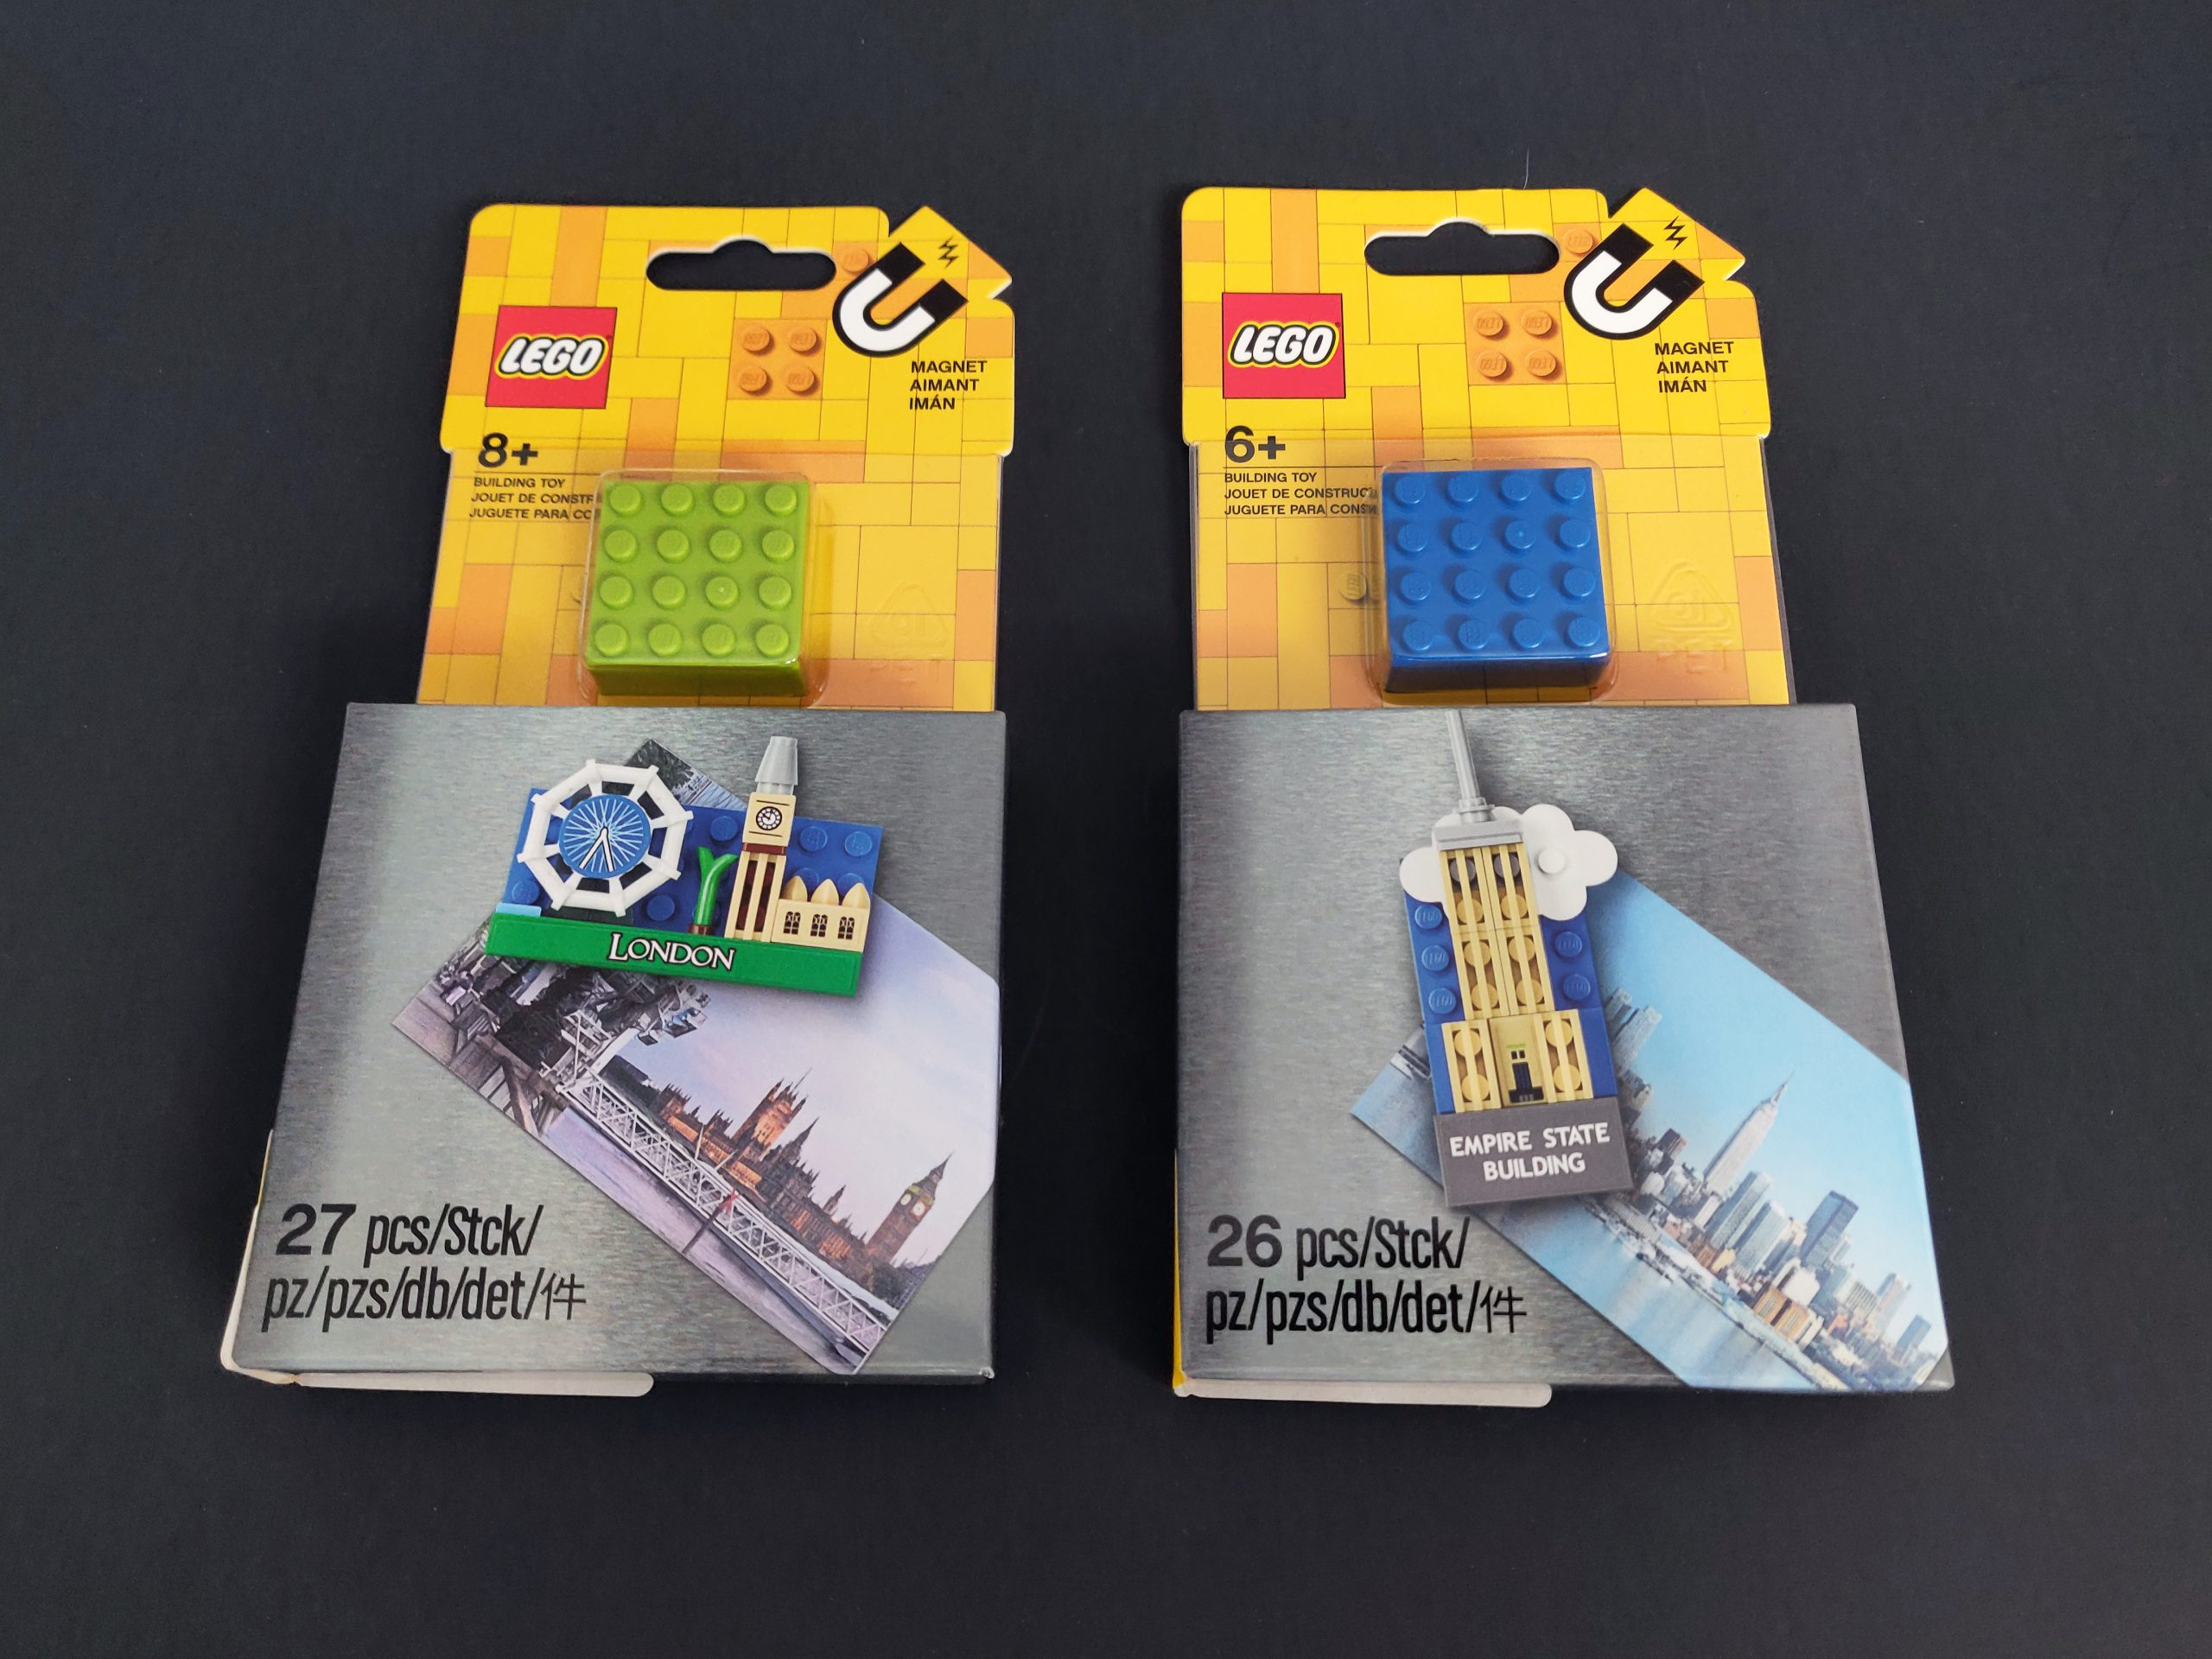 Lego Magnets London 854012 Empire State Building 854030 Review The Brick Fan